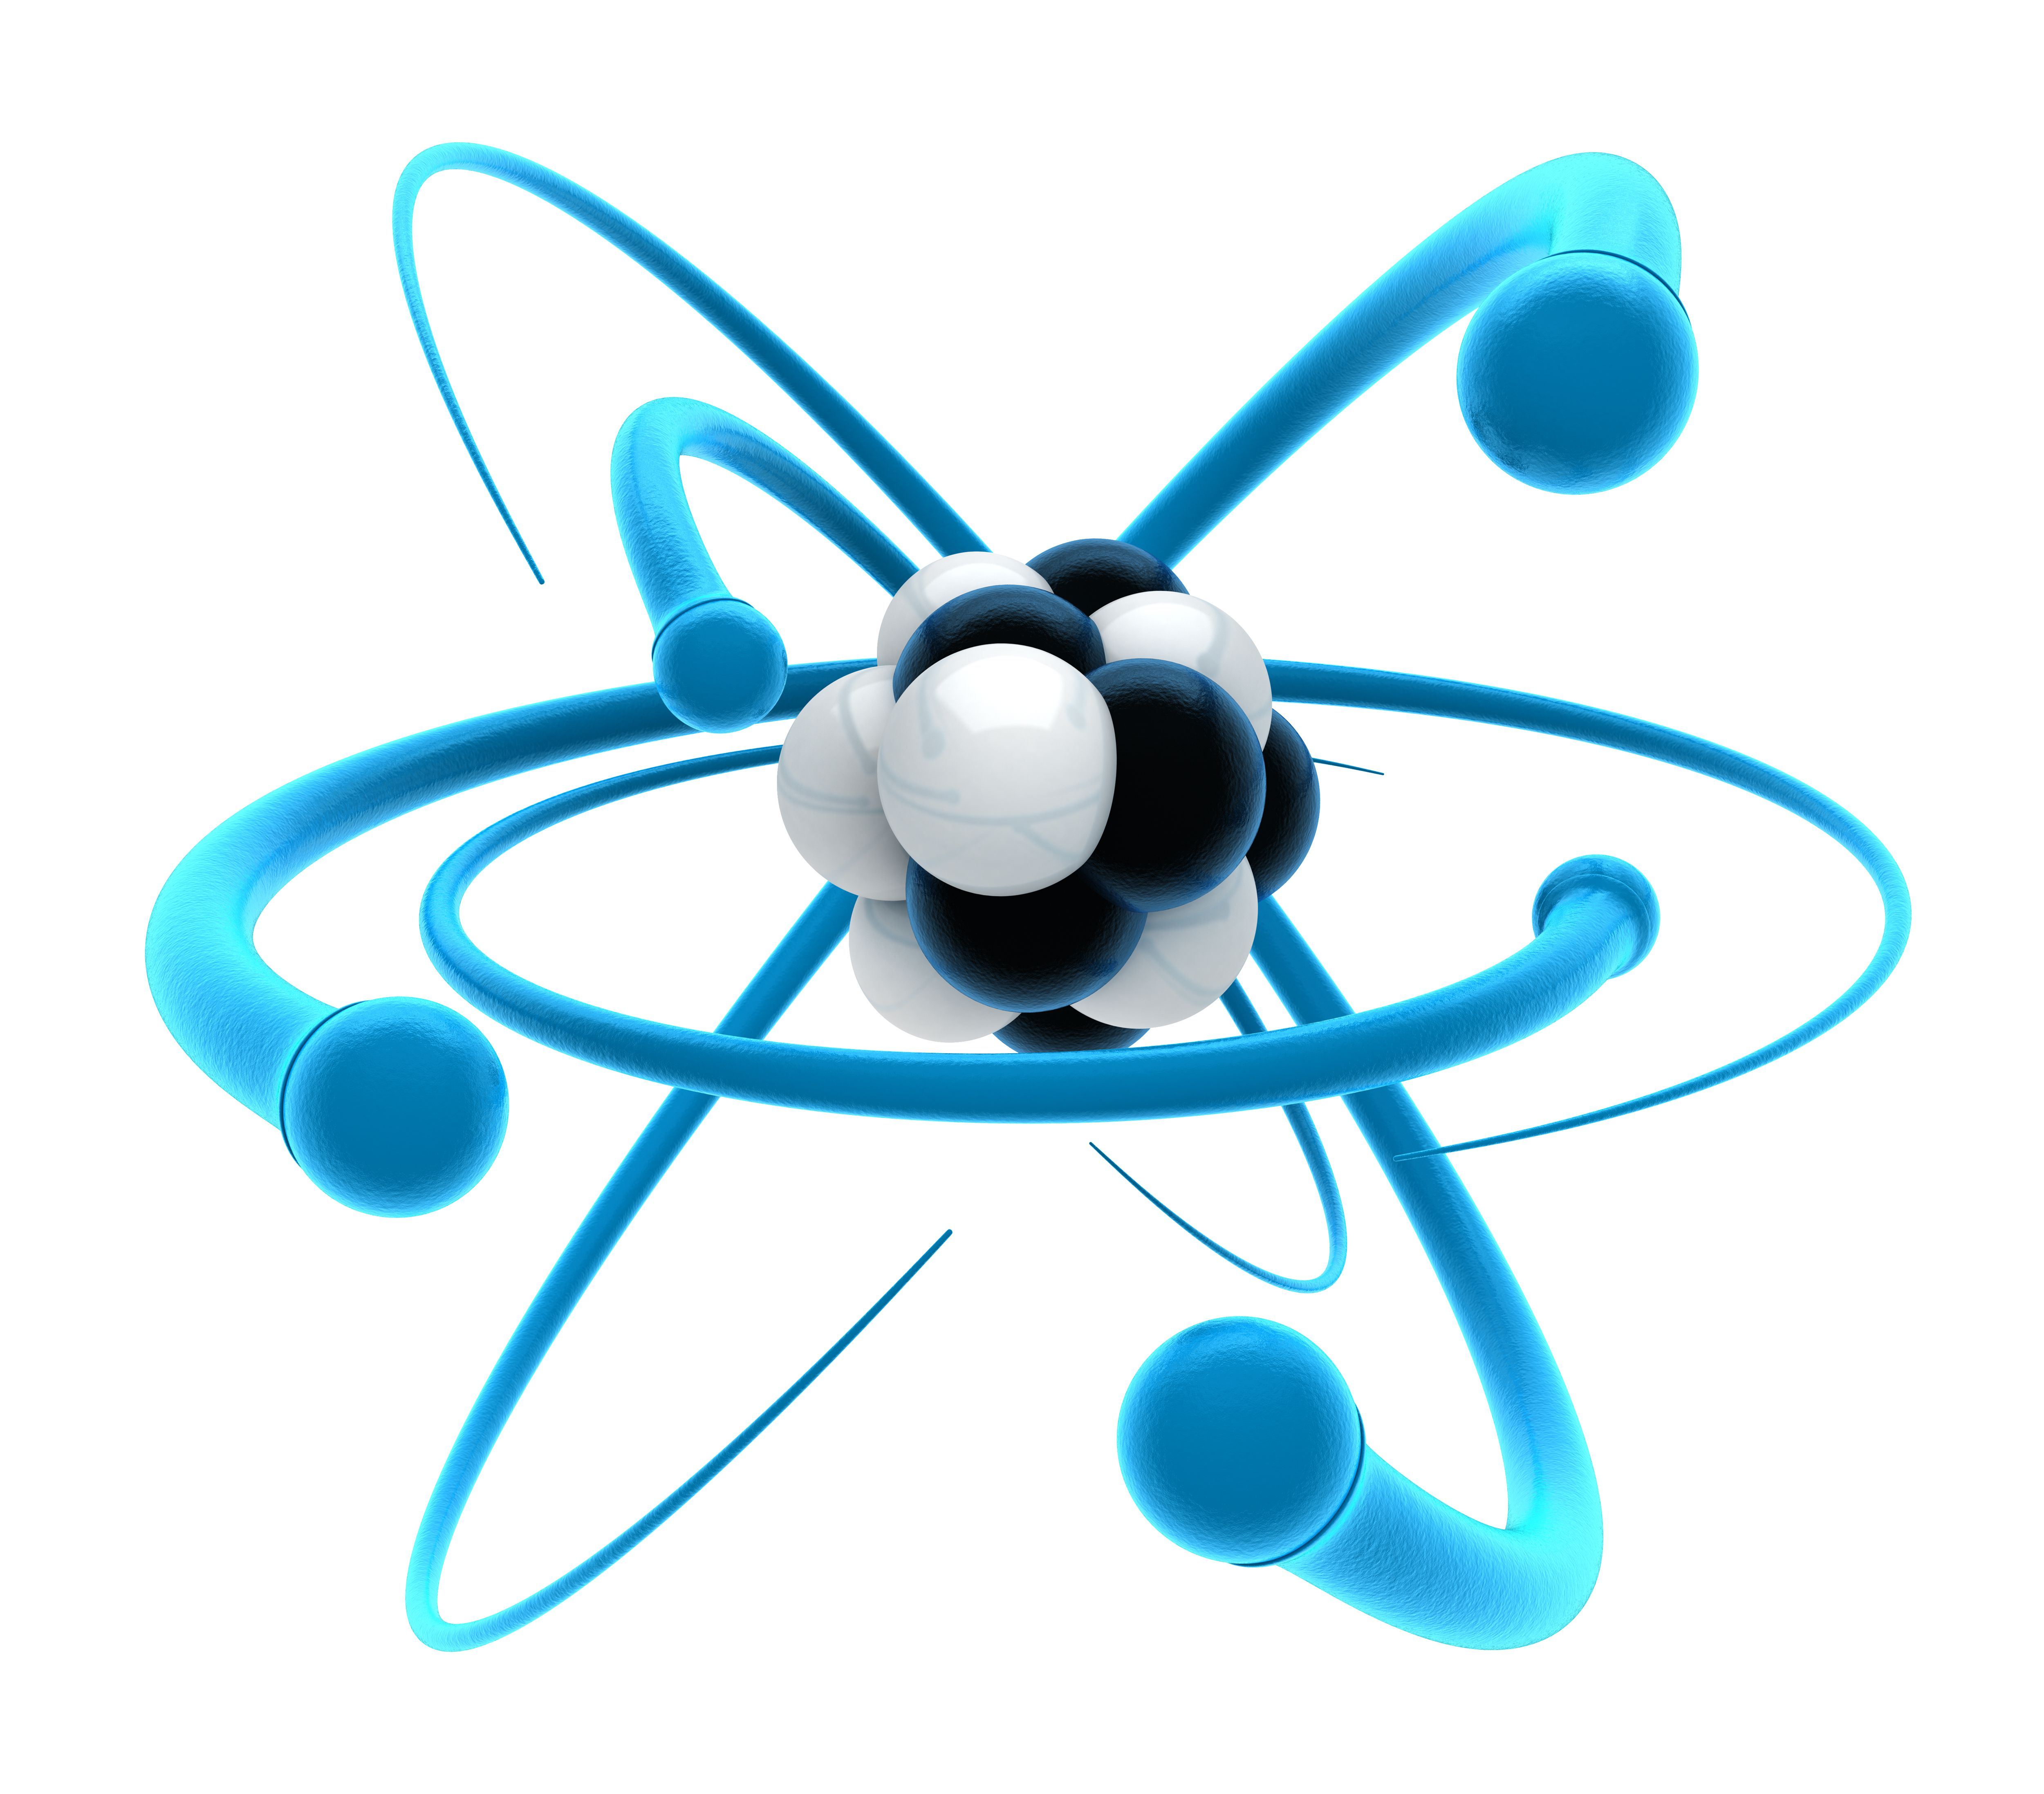 Protons are positive-charged particles found in the atomic nucleus.